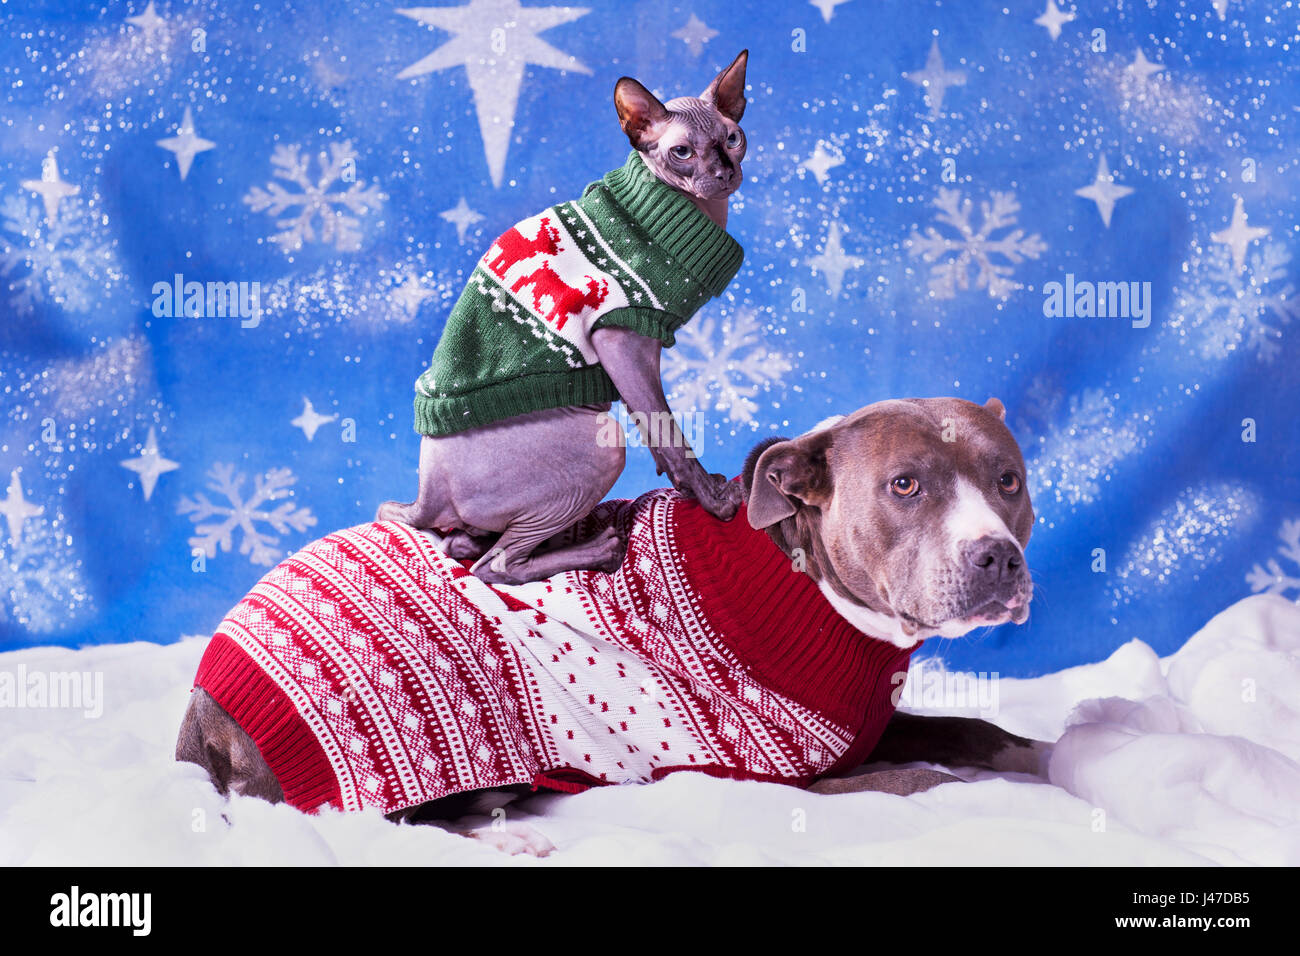 Holiday Portrait Of A Pitbull And A Sphynx Cat In Christmas Sweaters